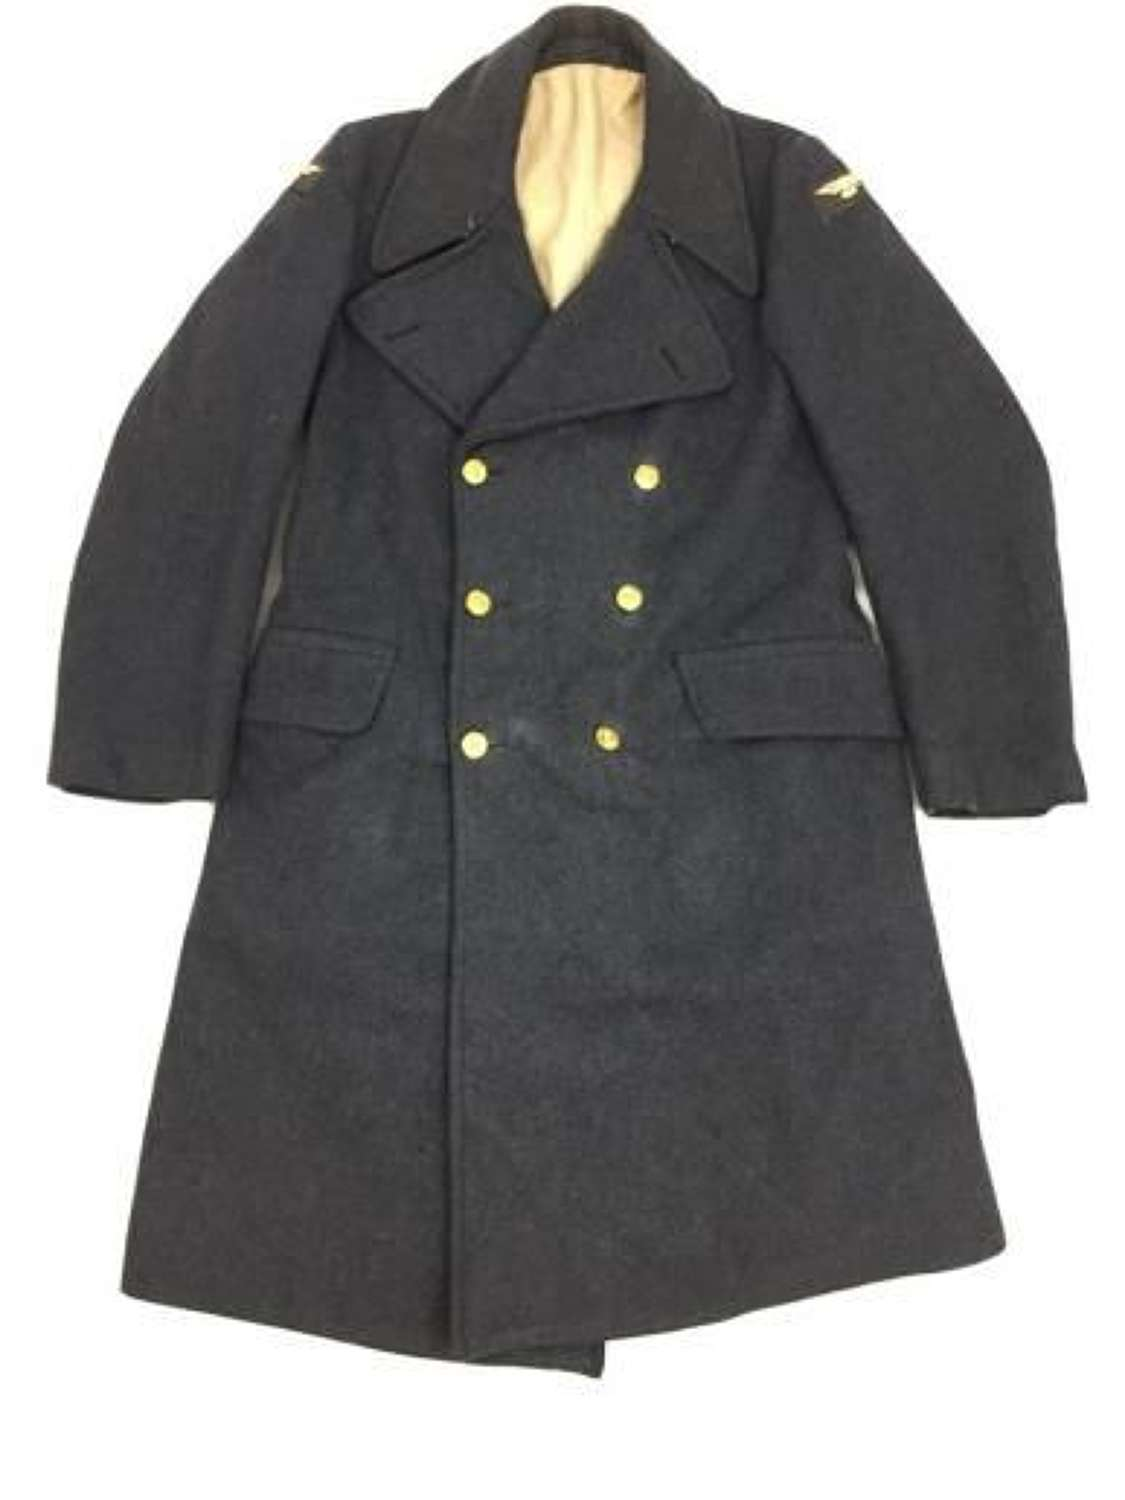 1944 Dated RAF Ordinary Airman's Greatcoat Size 10 - LAC Maxwell